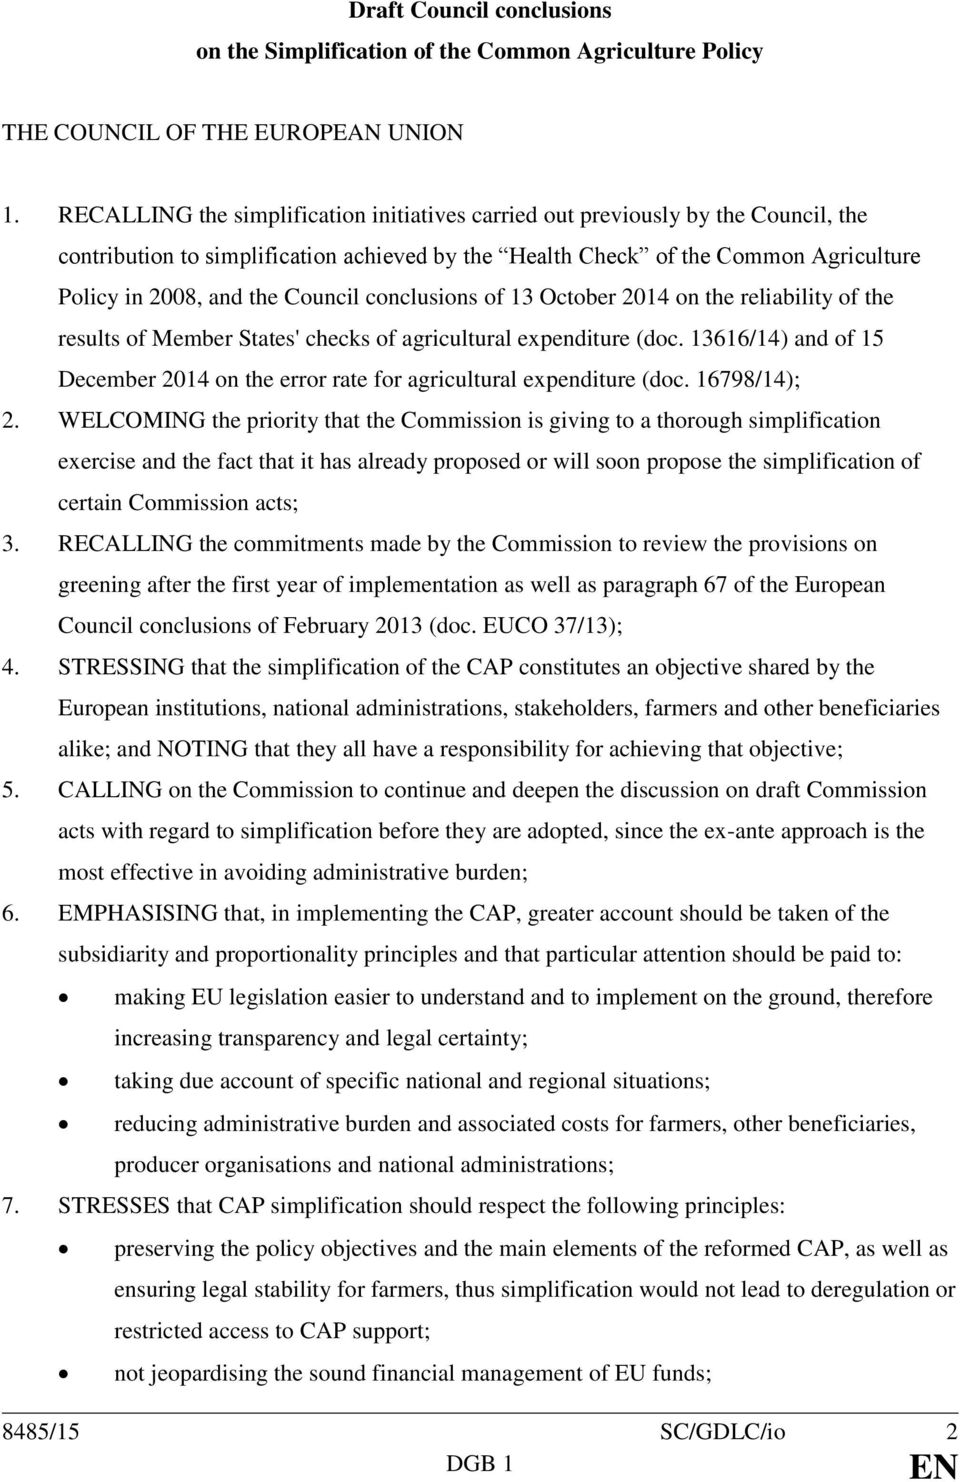 Council conclusions of 13 October 2014 on the reliability of the results of Member States' checks of agricultural expenditure (doc.